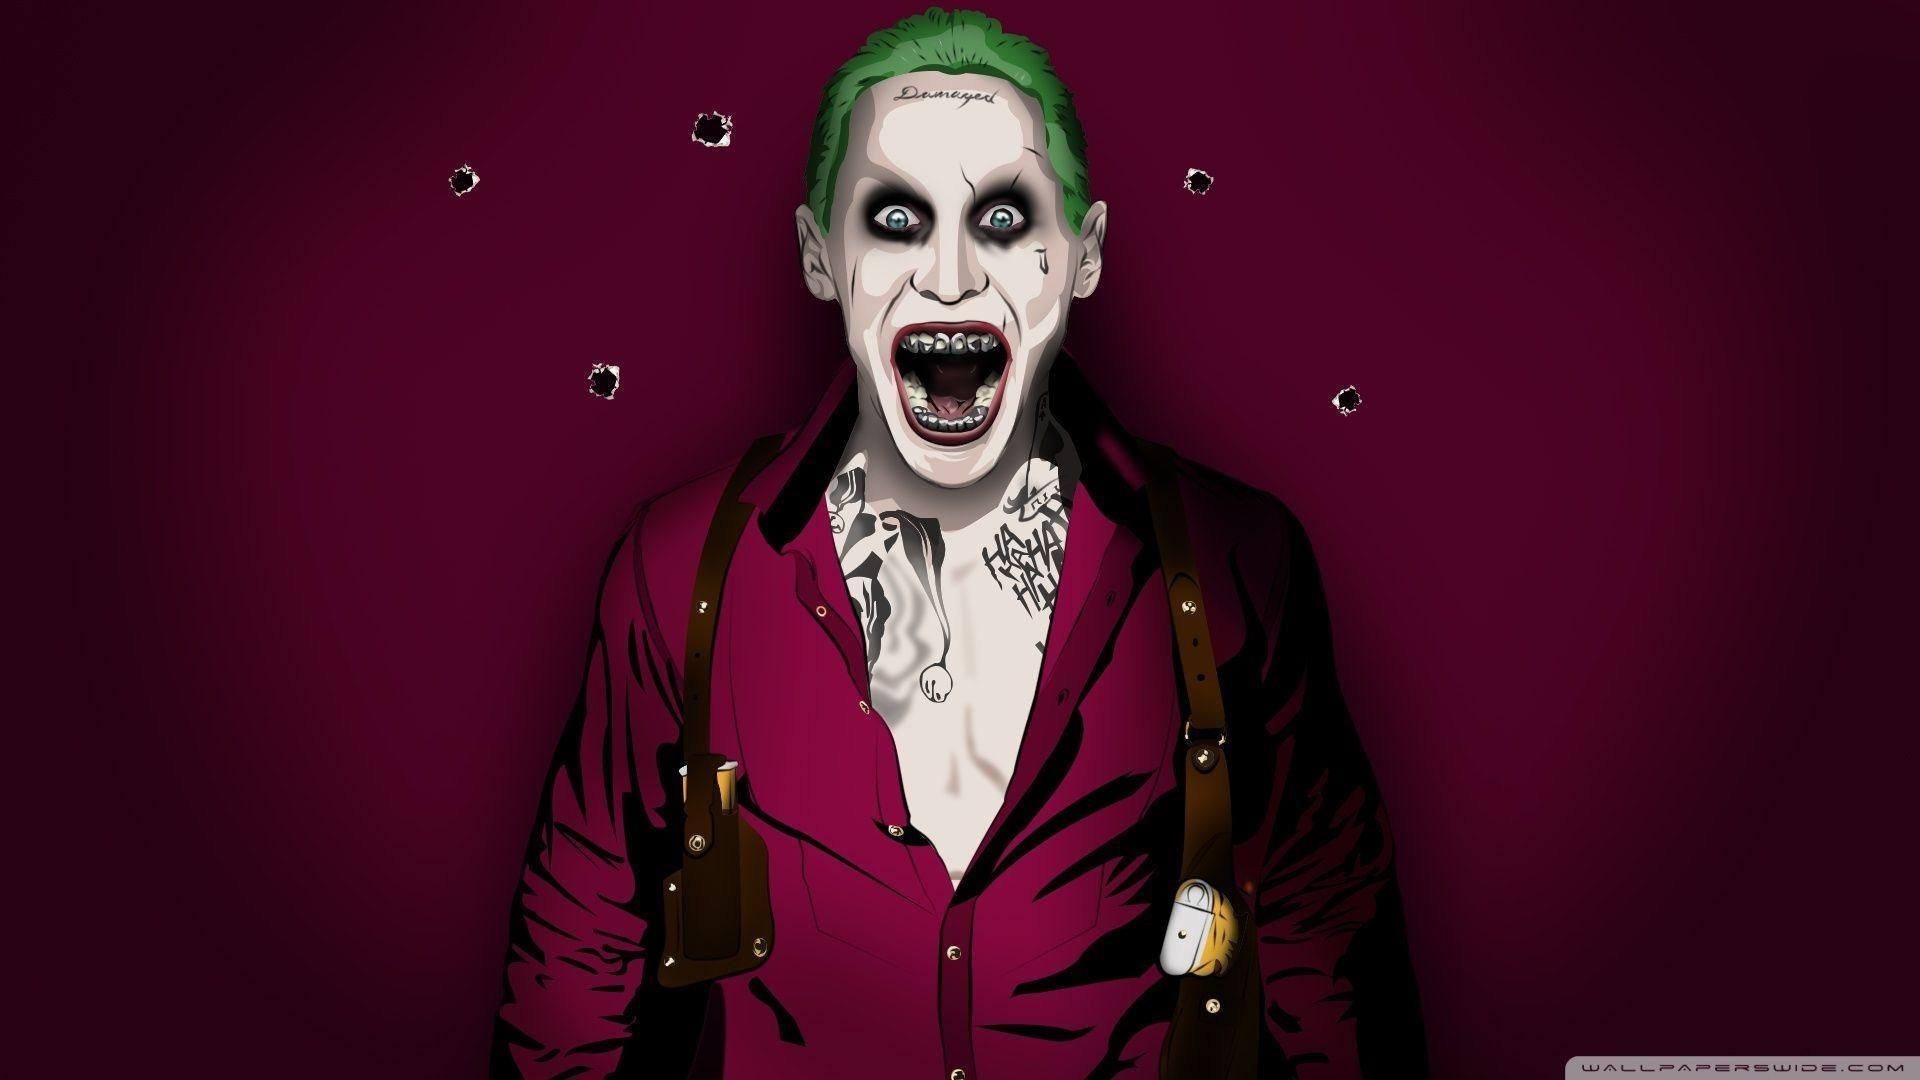 jared leto joker wallpapers - wallpaper cave